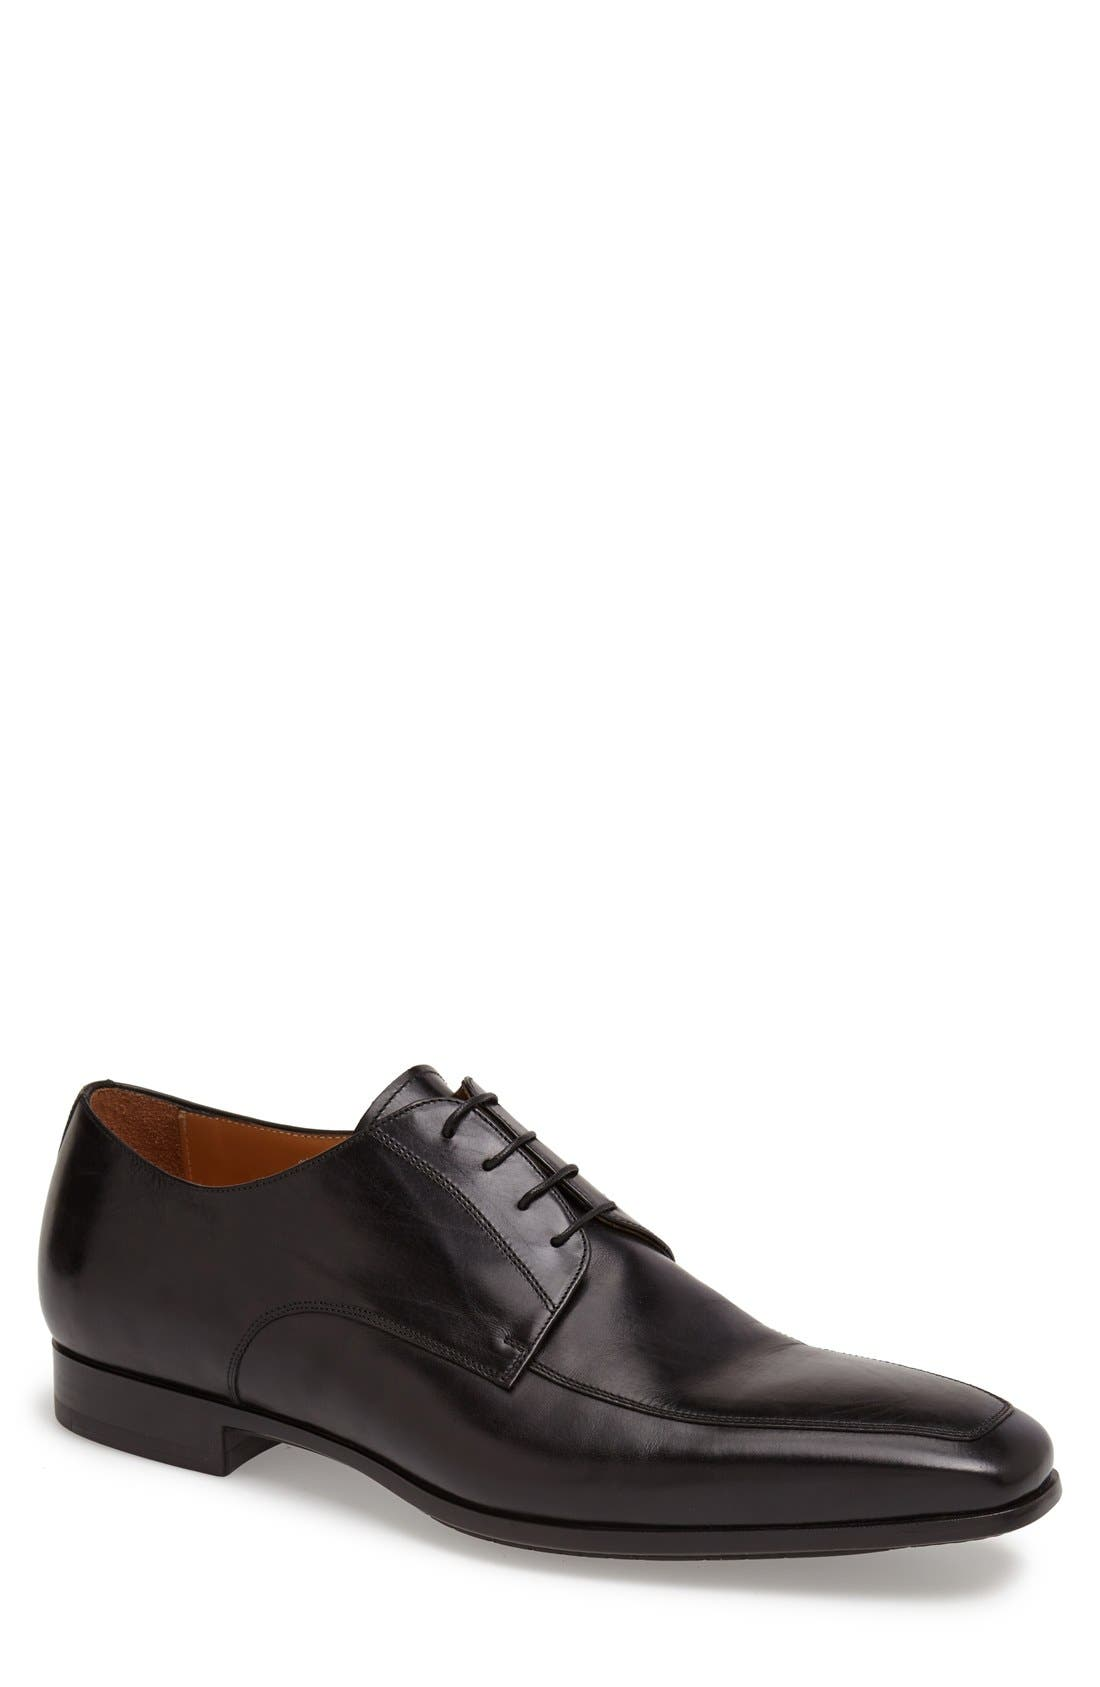 Alternate Image 1 Selected - Santoni 'Prichard' Apron Toe Derby (Men)